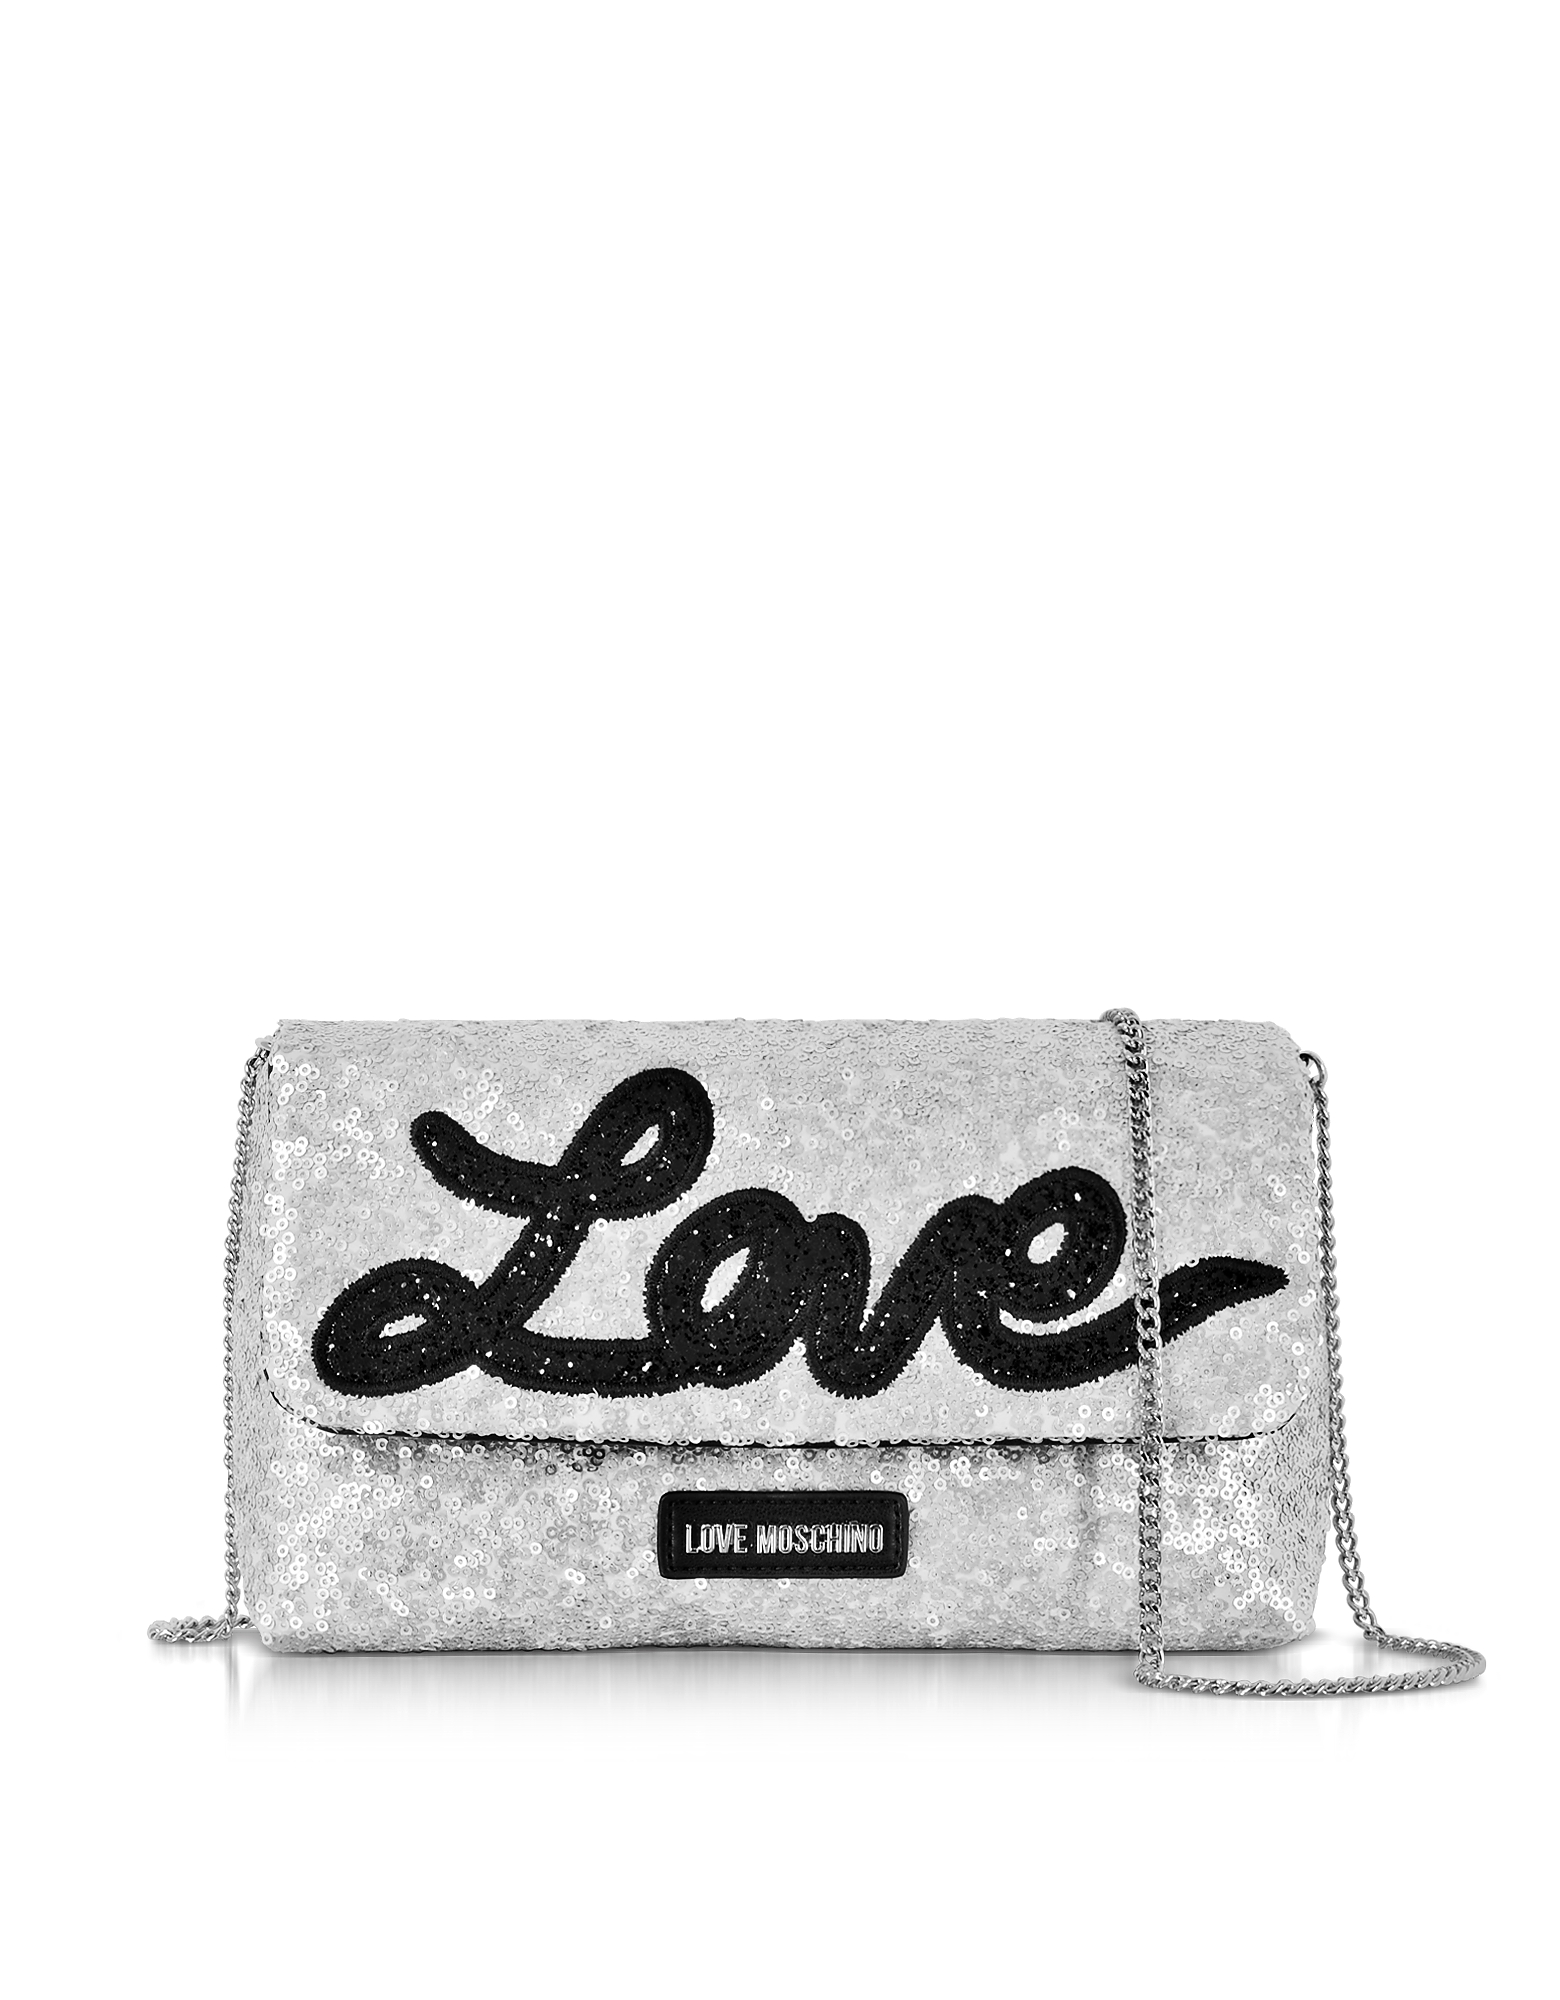 Love Moschino Handbags, Love Sequins Metallic Silver Clutch w/Chain Strap